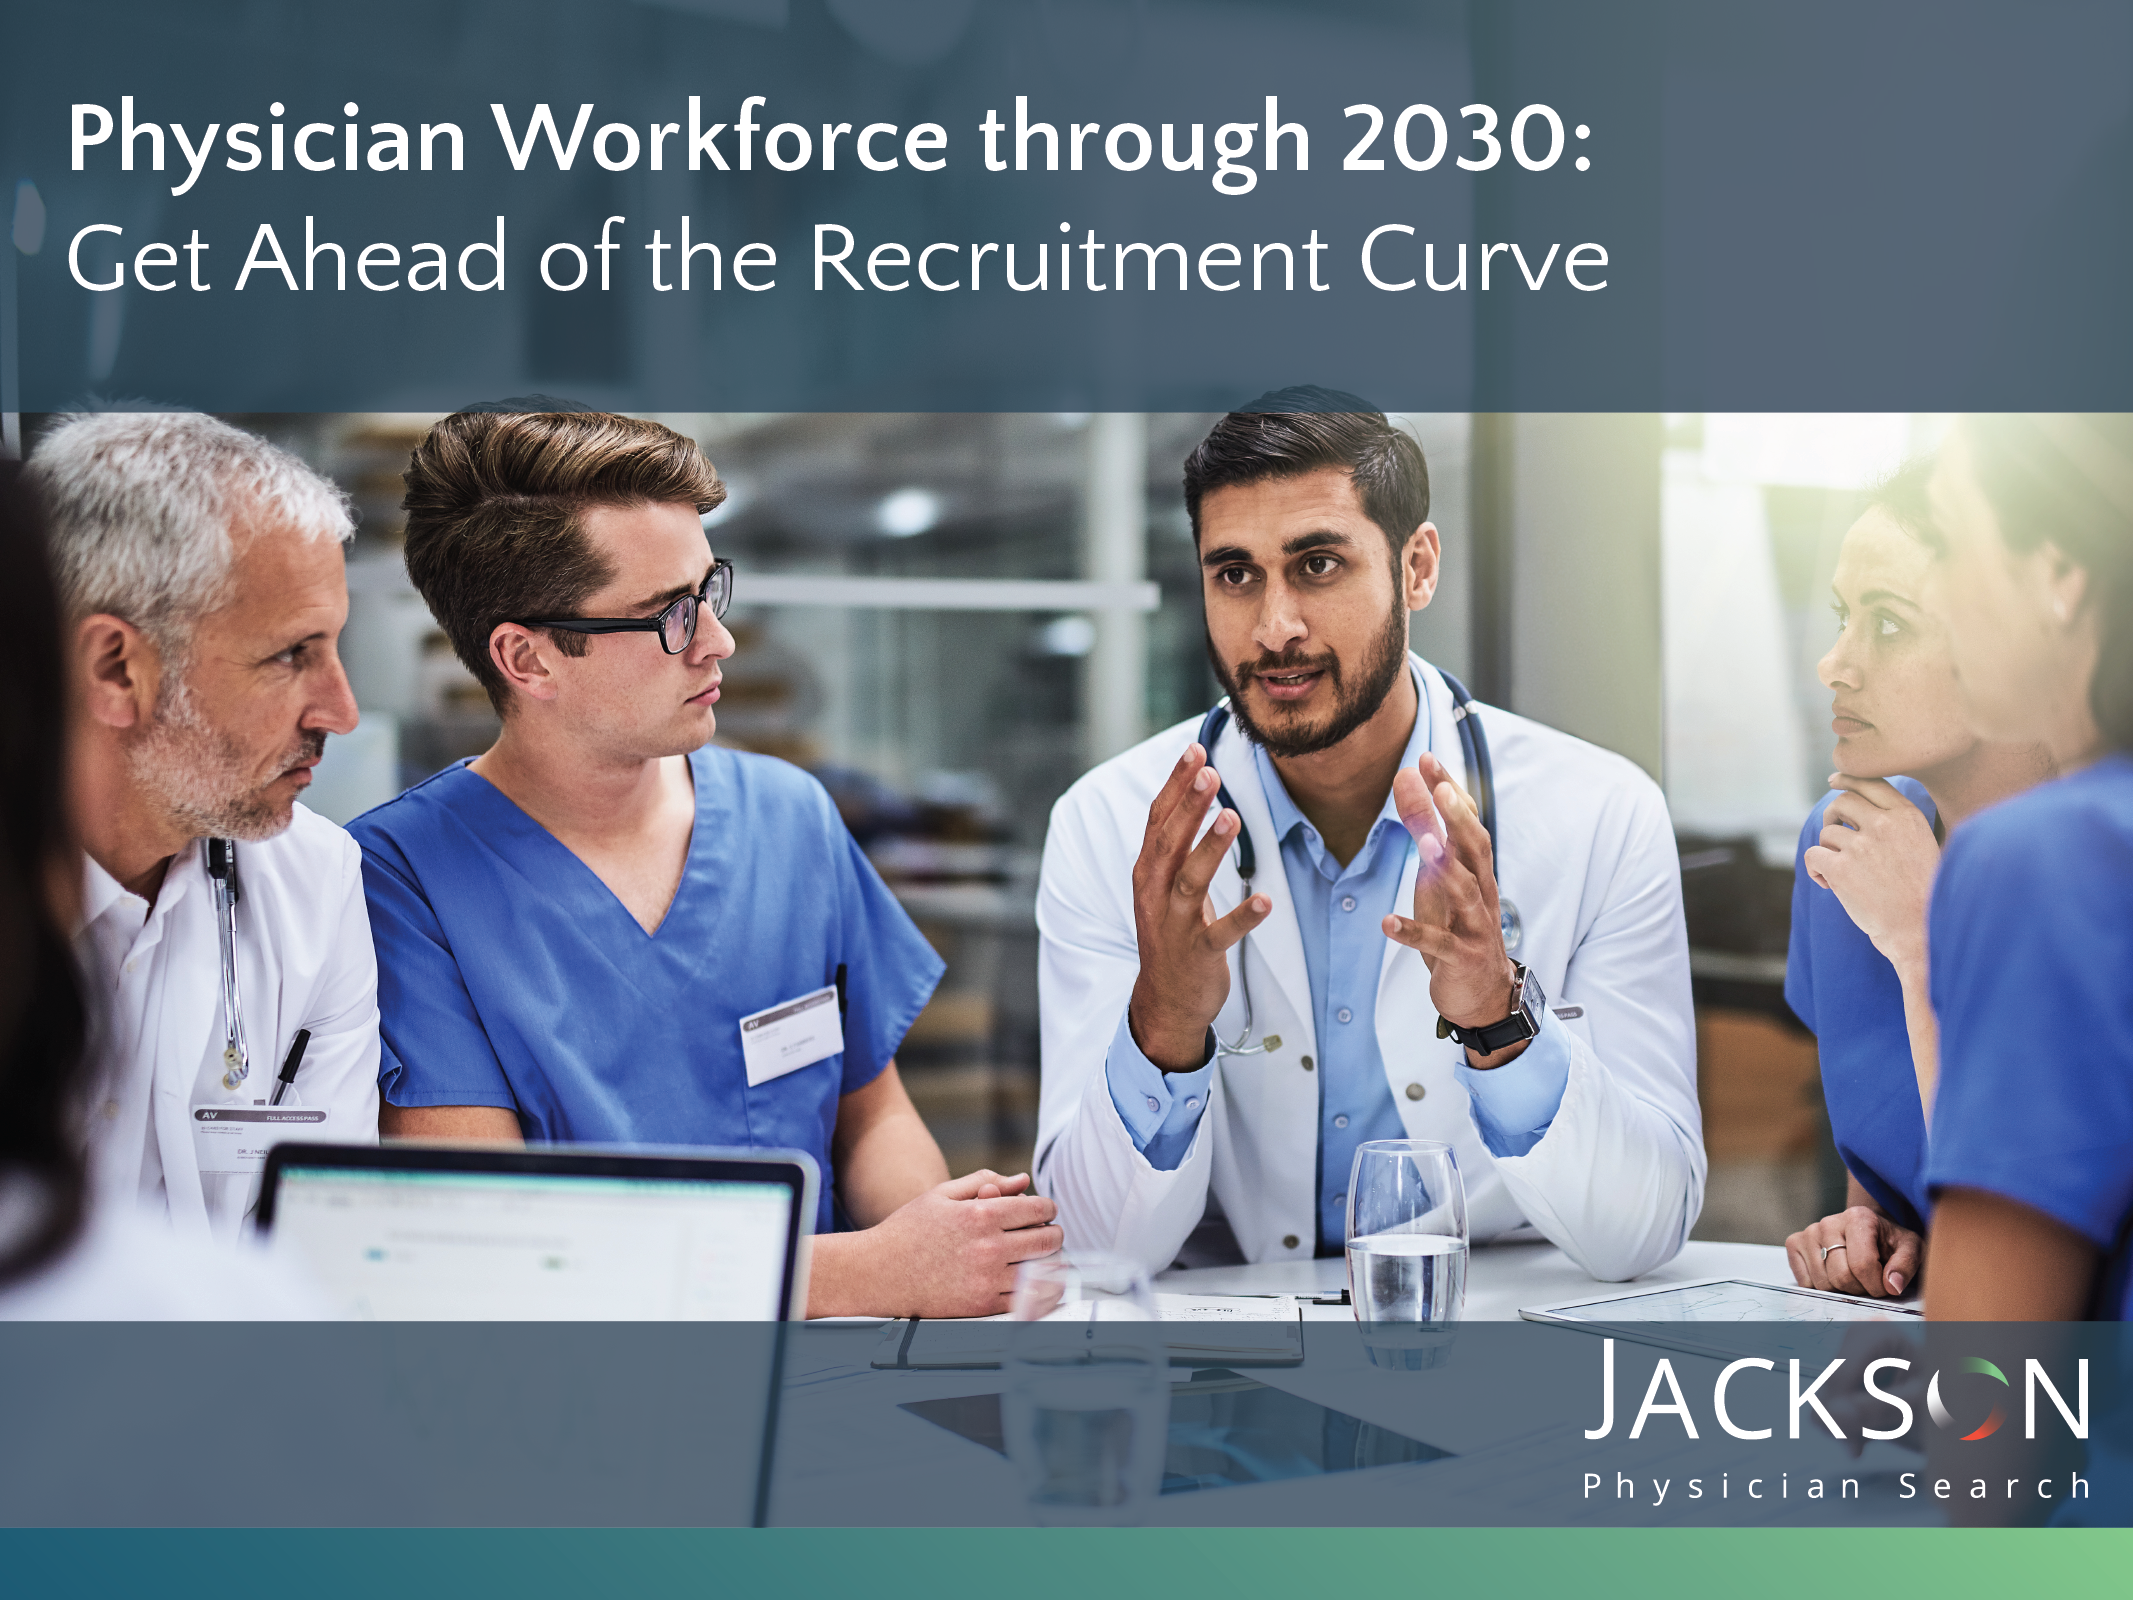 Physician Workforce Through 2030: Get Ahead of the Recruitment Curve